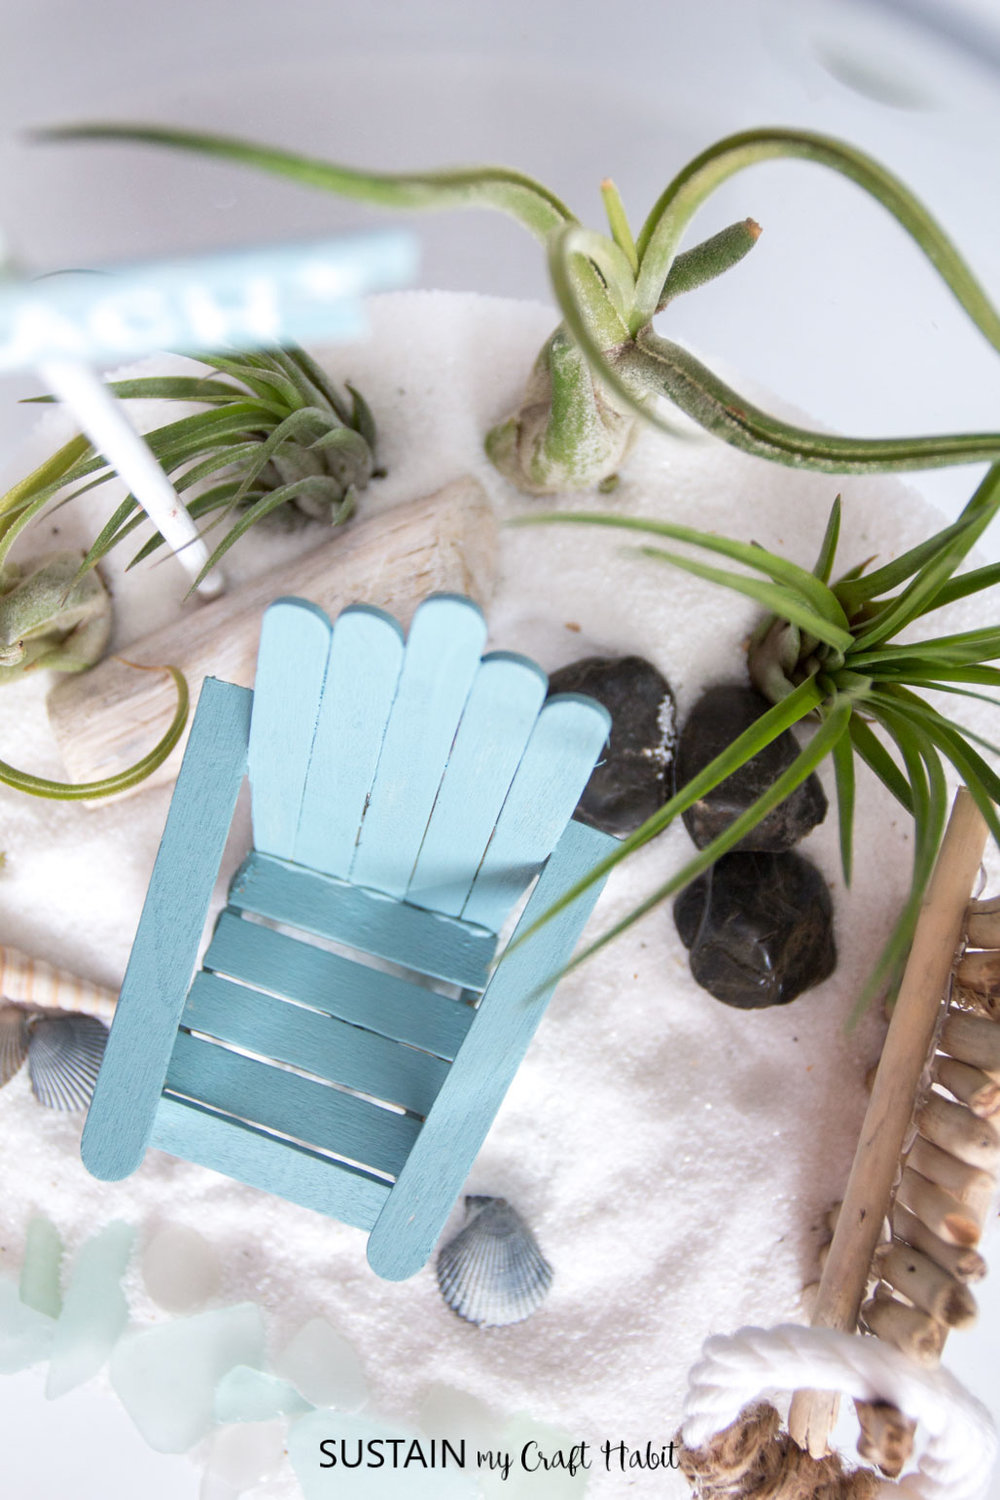 DIY Muskoka chair made with wooden craft sticks as a part of a beachy air plant mini-garden. Simple Popsicle stick craft idea!